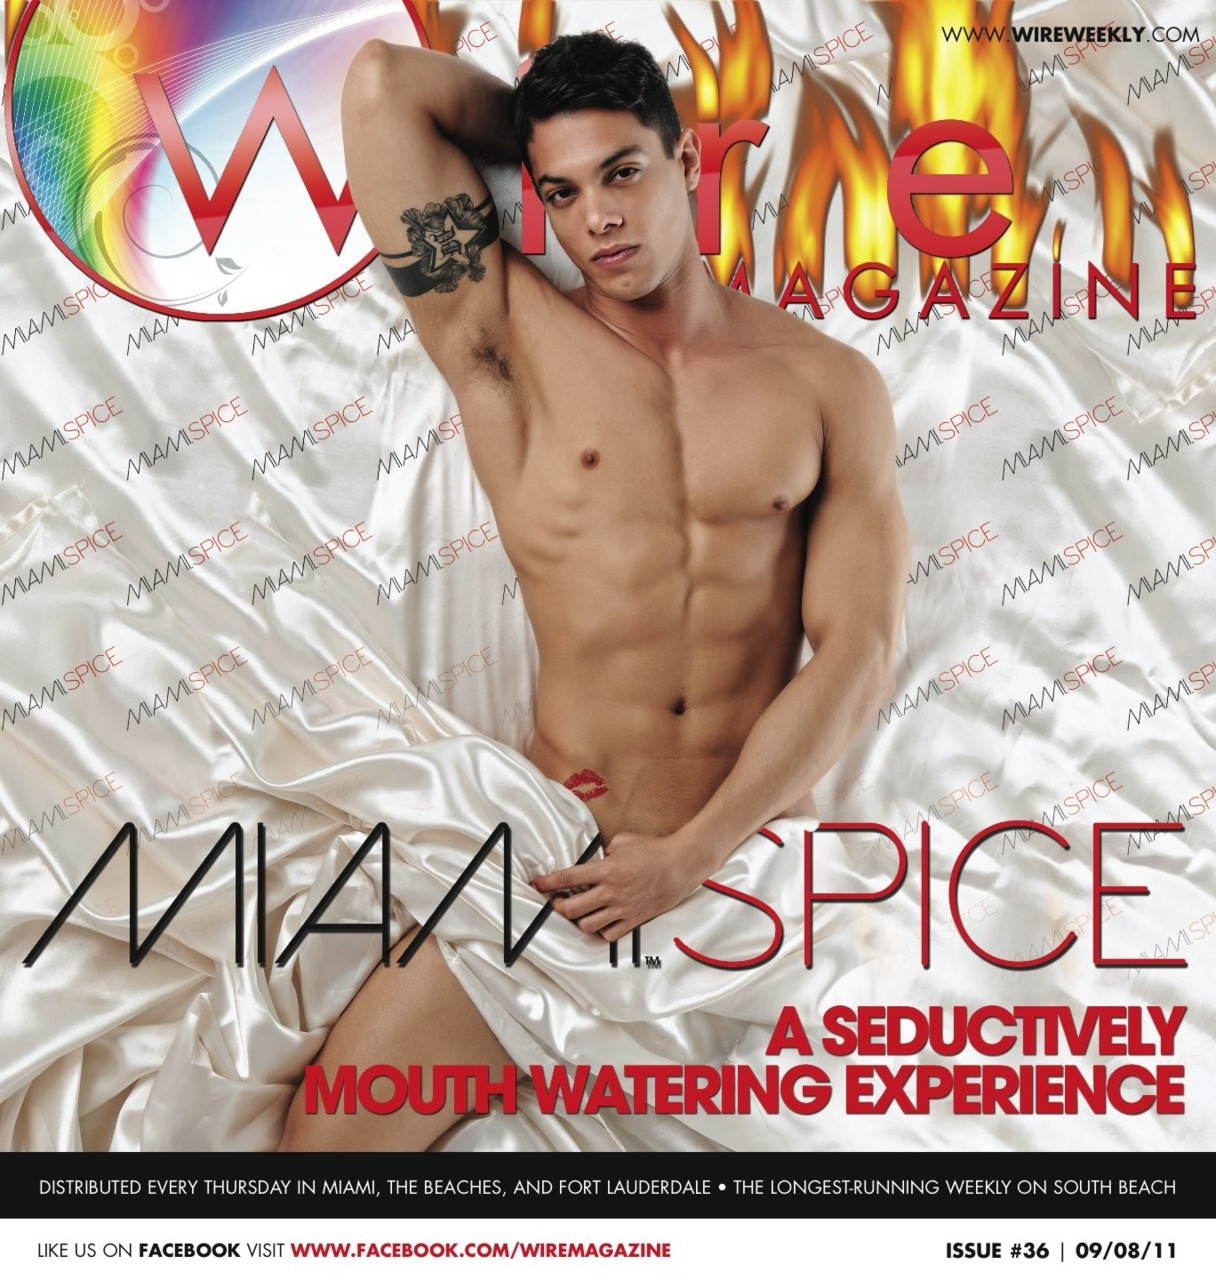 "Wire Magazine Issue 36: MIAMI SPICE: A Seductively Mouth Watering Experience Get an inside review of four Miami Spice restaurant experiences.   Also Inside:  Find out what's coming to Score Sunday Nights with Club Boi Learn about the sounds of Nicole Henry Get ready for Midnight in Paris and Point Blank as they come to Miami PLUS review ""This Week"" for a full listing of all the hottest events of the week AND OF COURSE, Don't forget to check out this weeks photo albums from Labor Day Weekend from places like Palace, Urge, TWIST, Discotekka, Wet Bar, and the grand opening of Coco Bar"